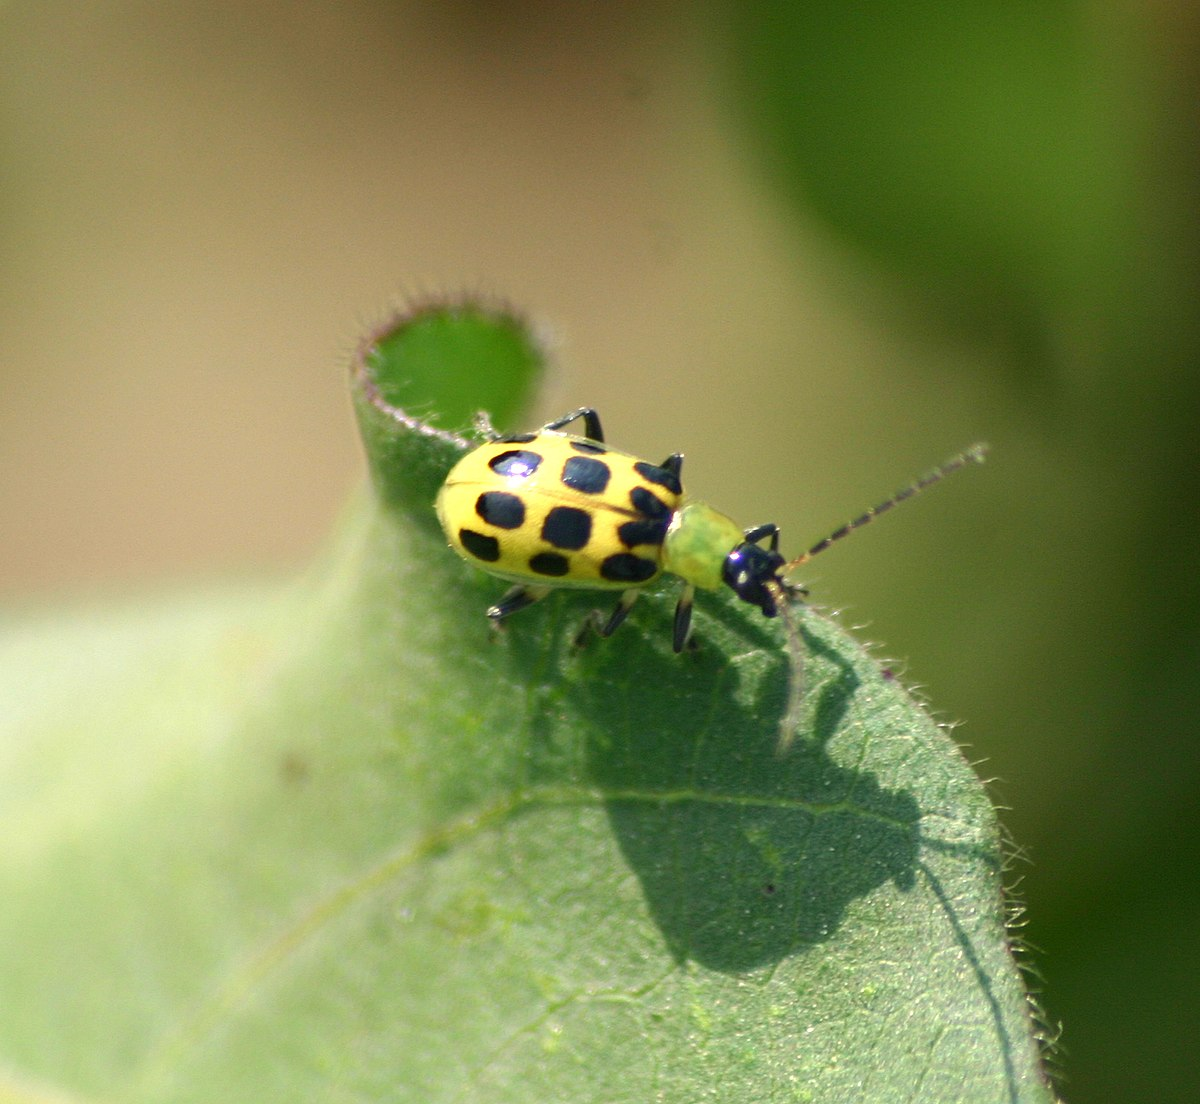 Spotted cucumber beetle - Wikipedia